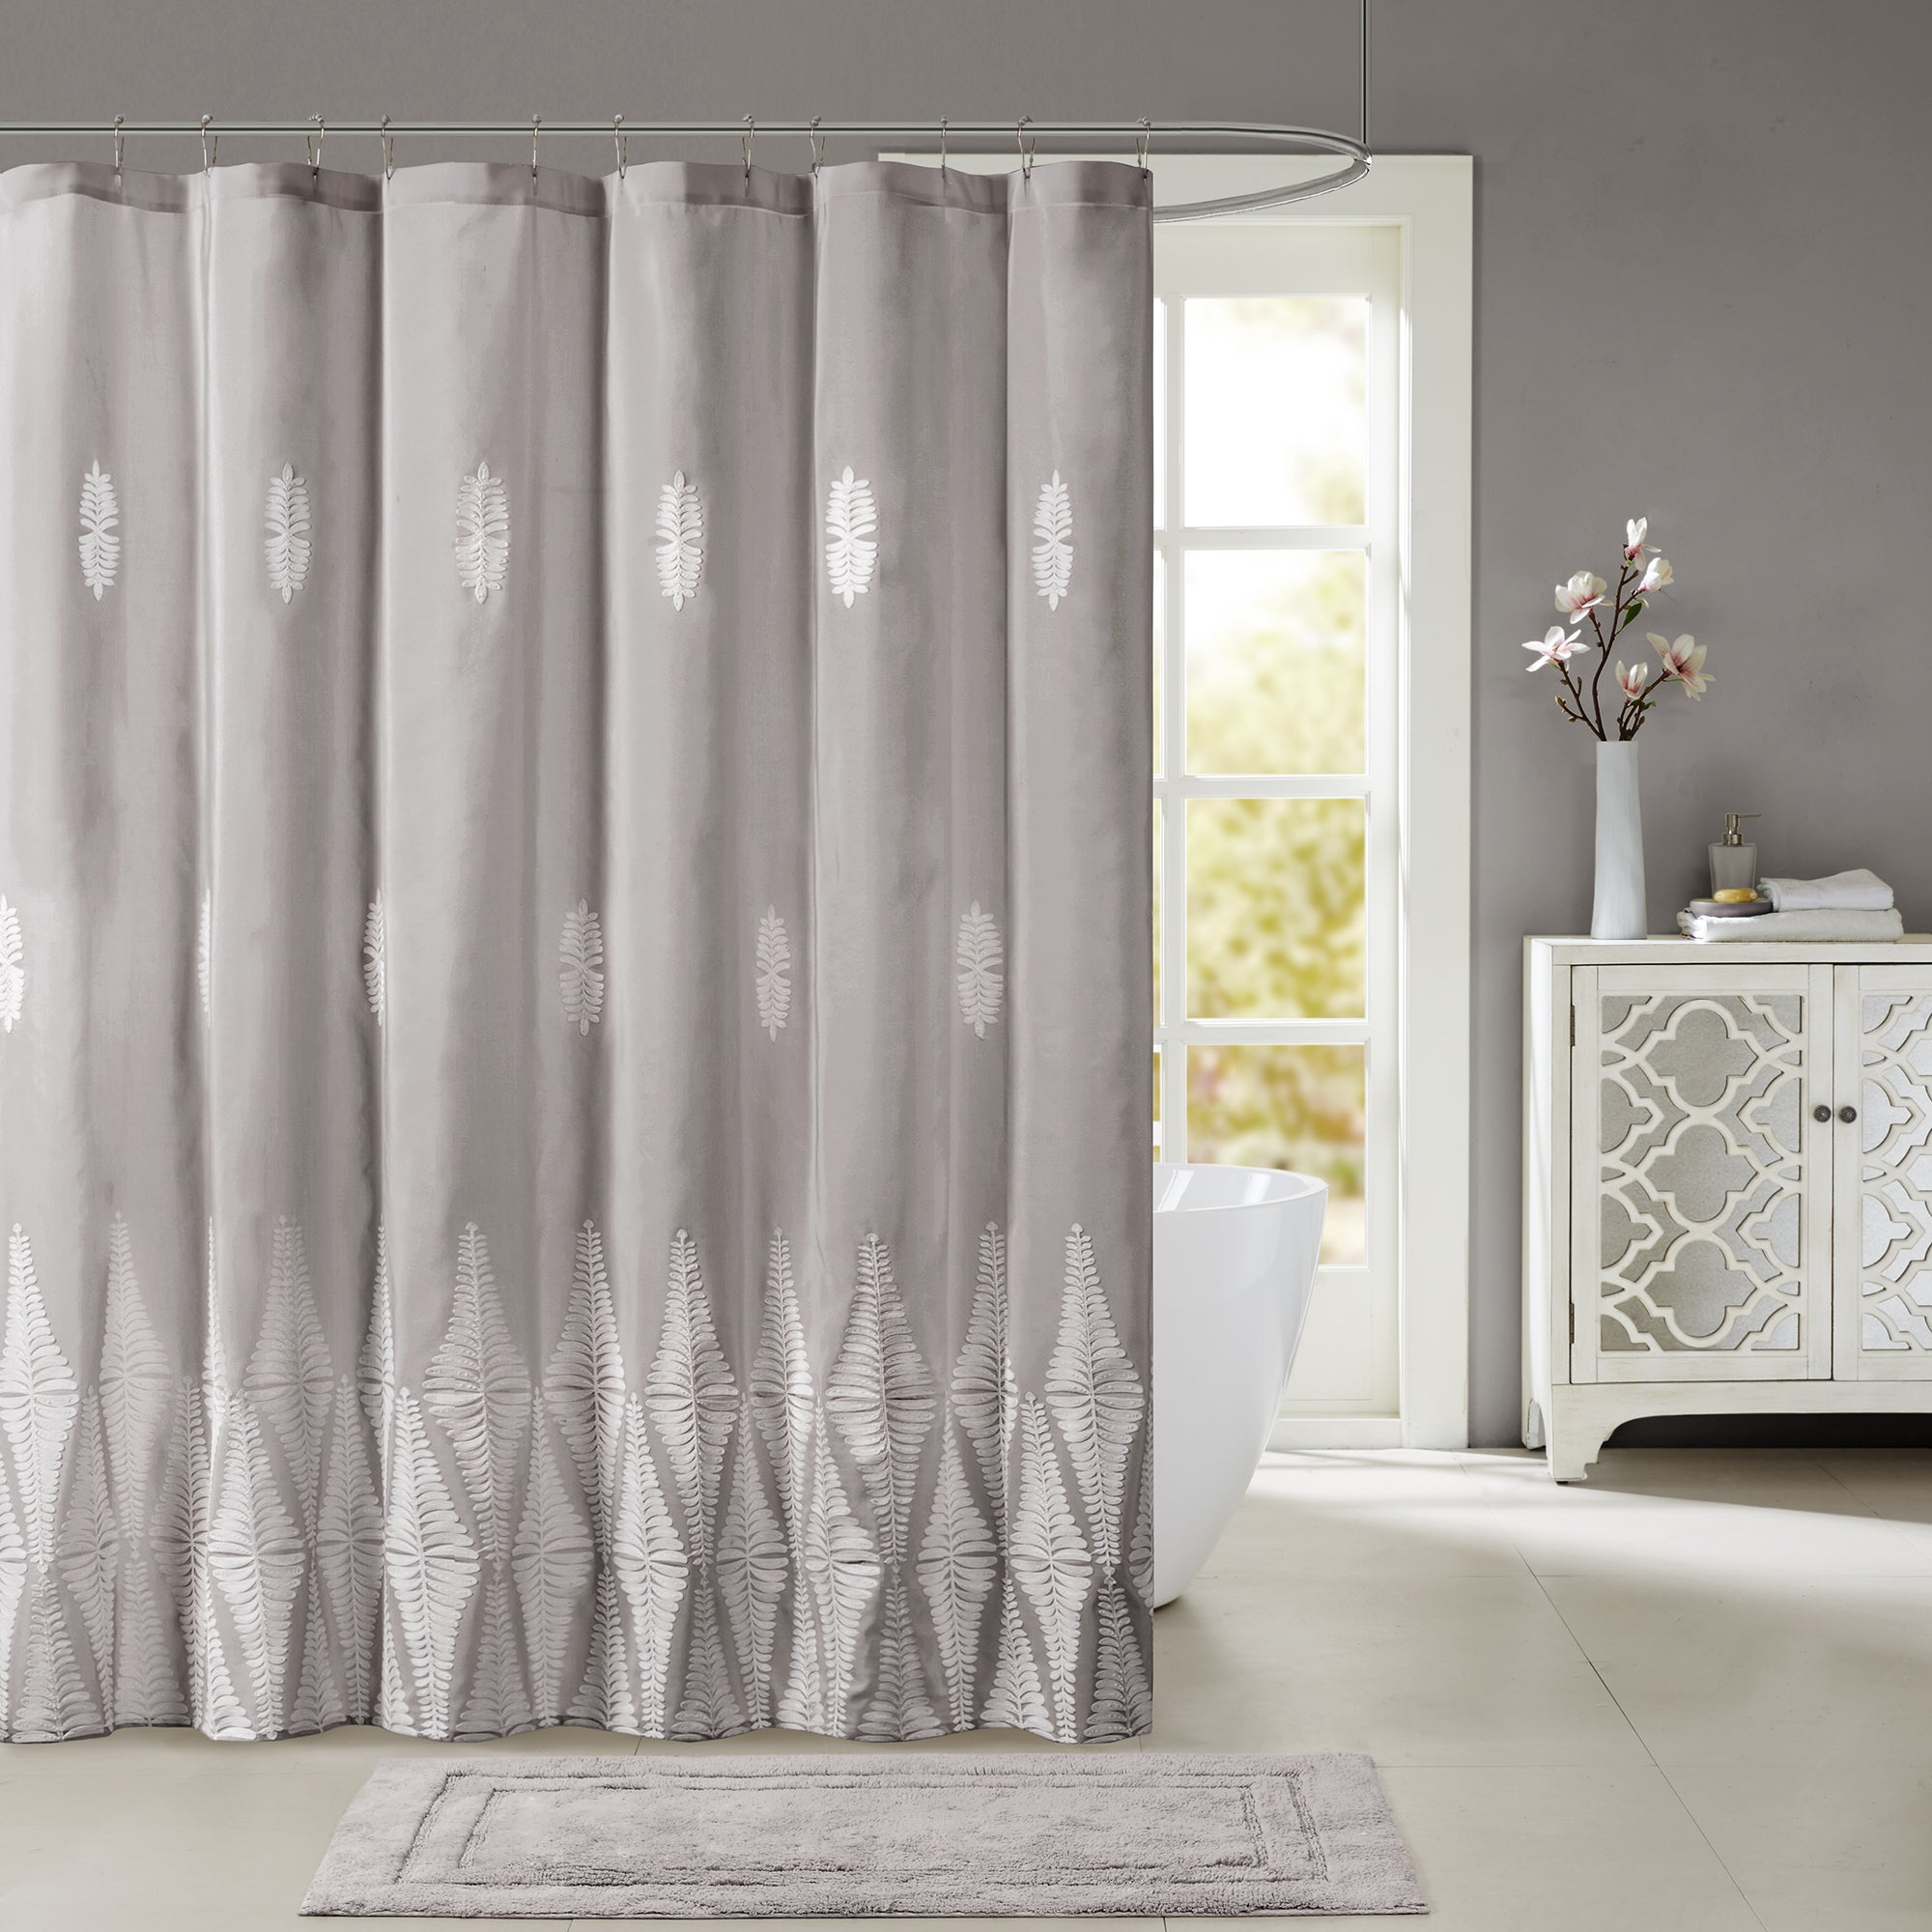 embroidered shower curtains for less | overstock - vibrant fabric